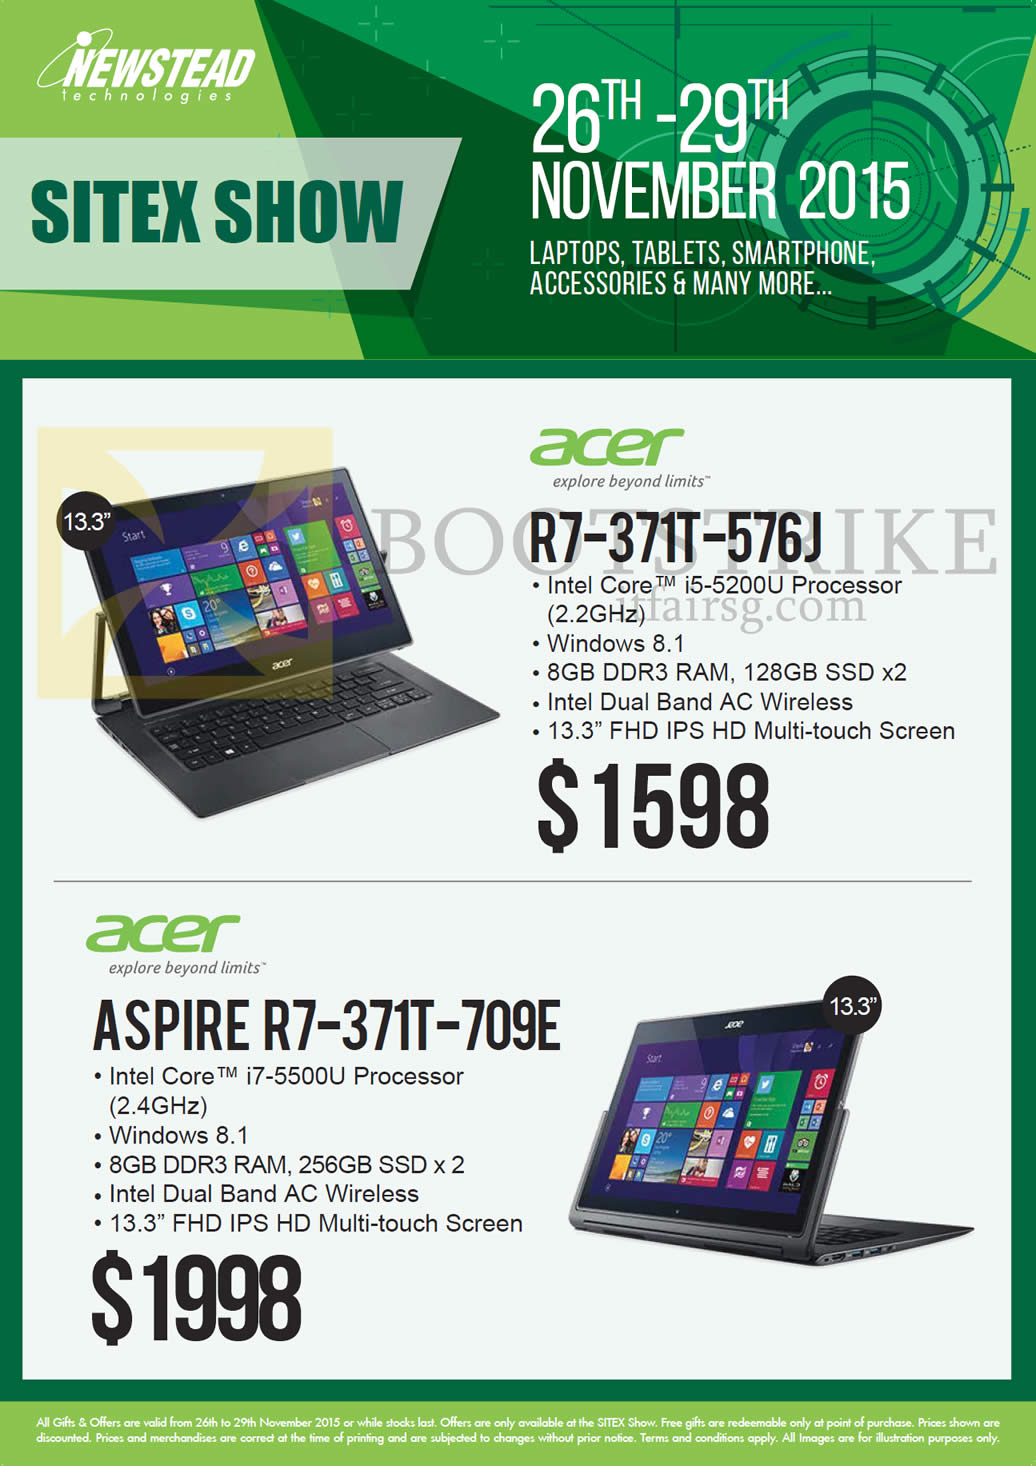 SITEX 2015 price list image brochure of Acer Newstead Notebooks Aspire, R7-371T-576J, R7-371T-709E